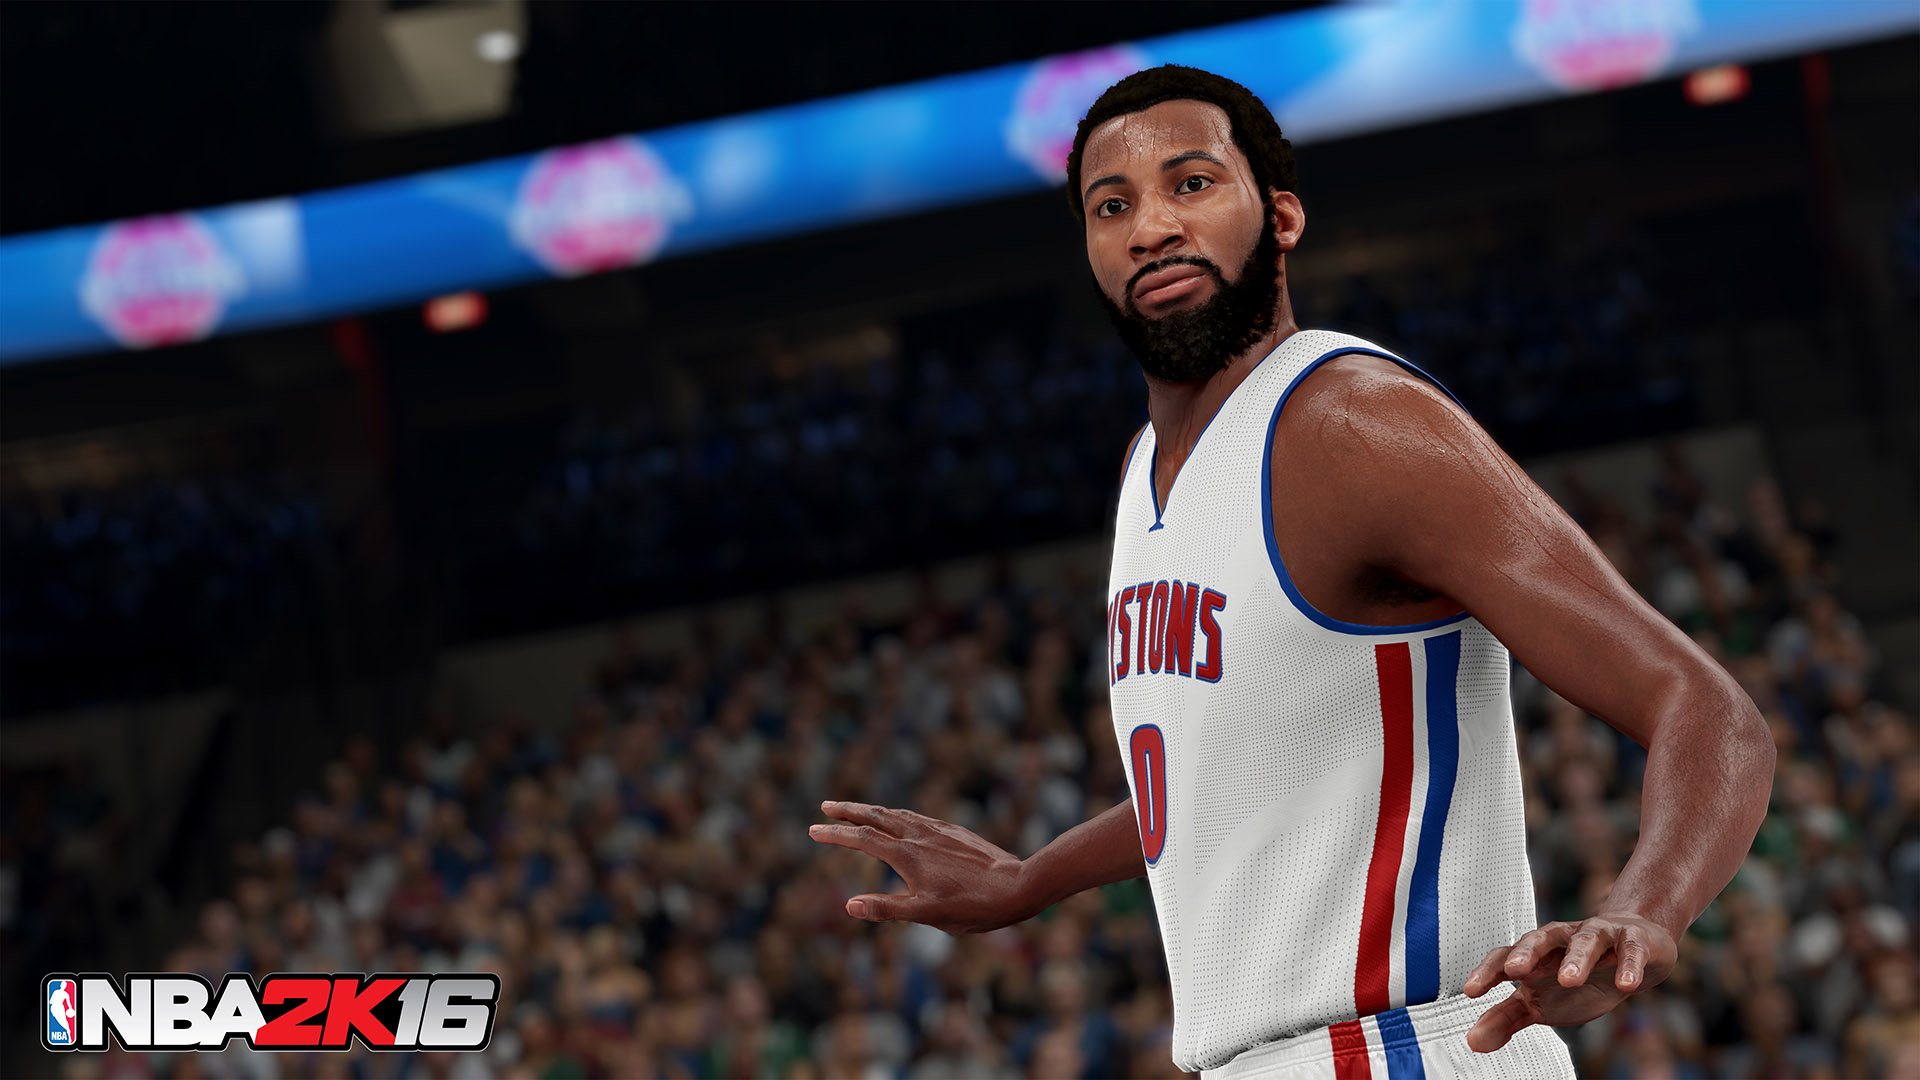 NBA 2K16 (steam key region free)